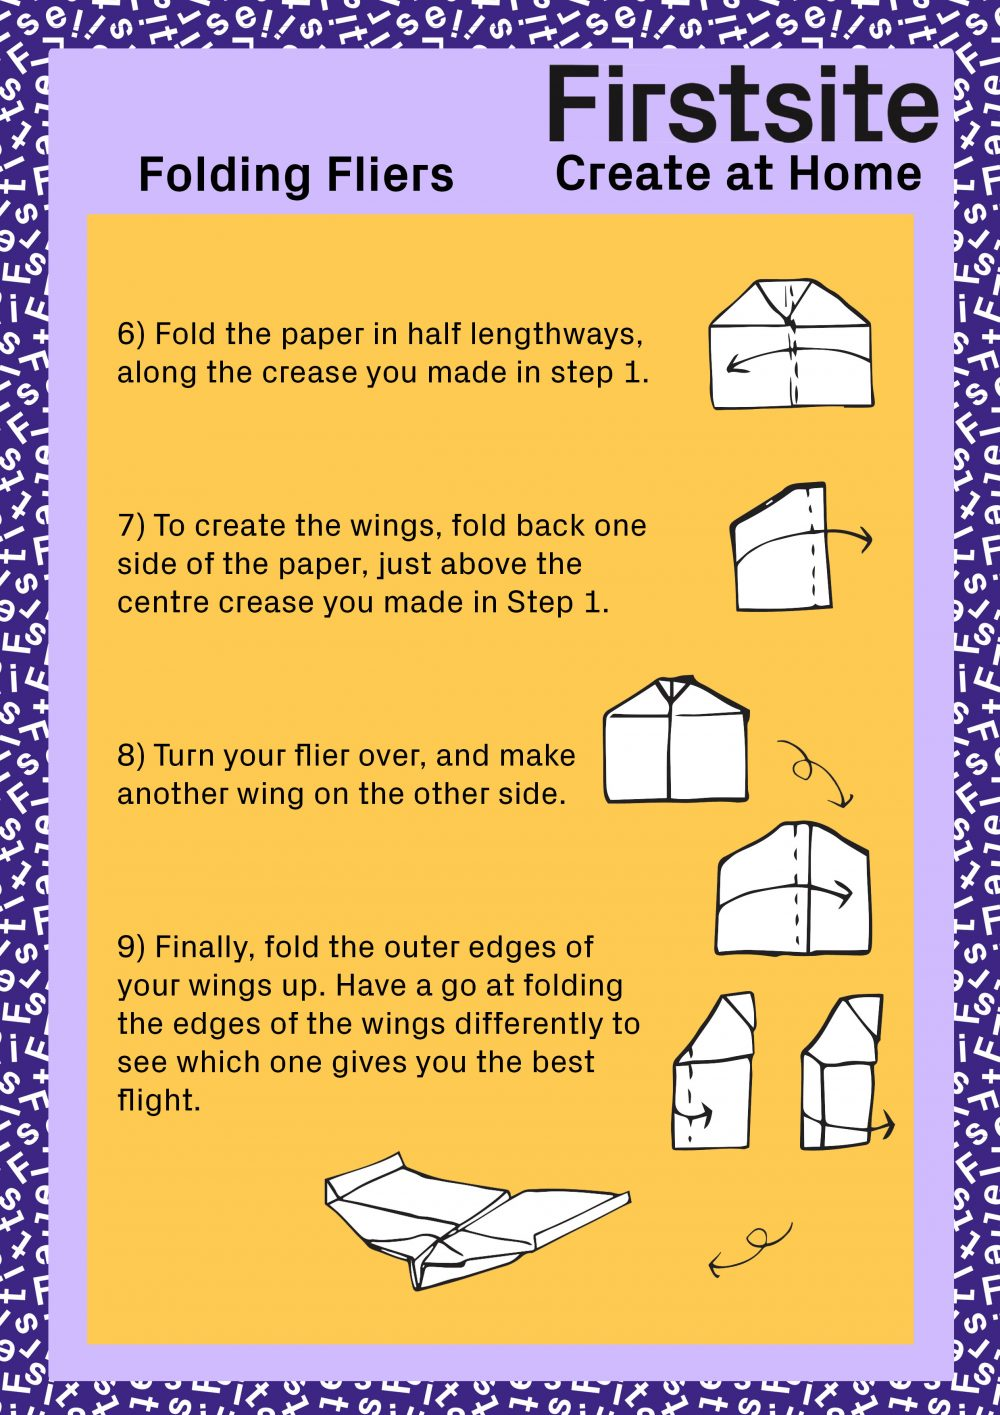 Firstsite Create at Home Folding Fliers Instructions page 3 of 3